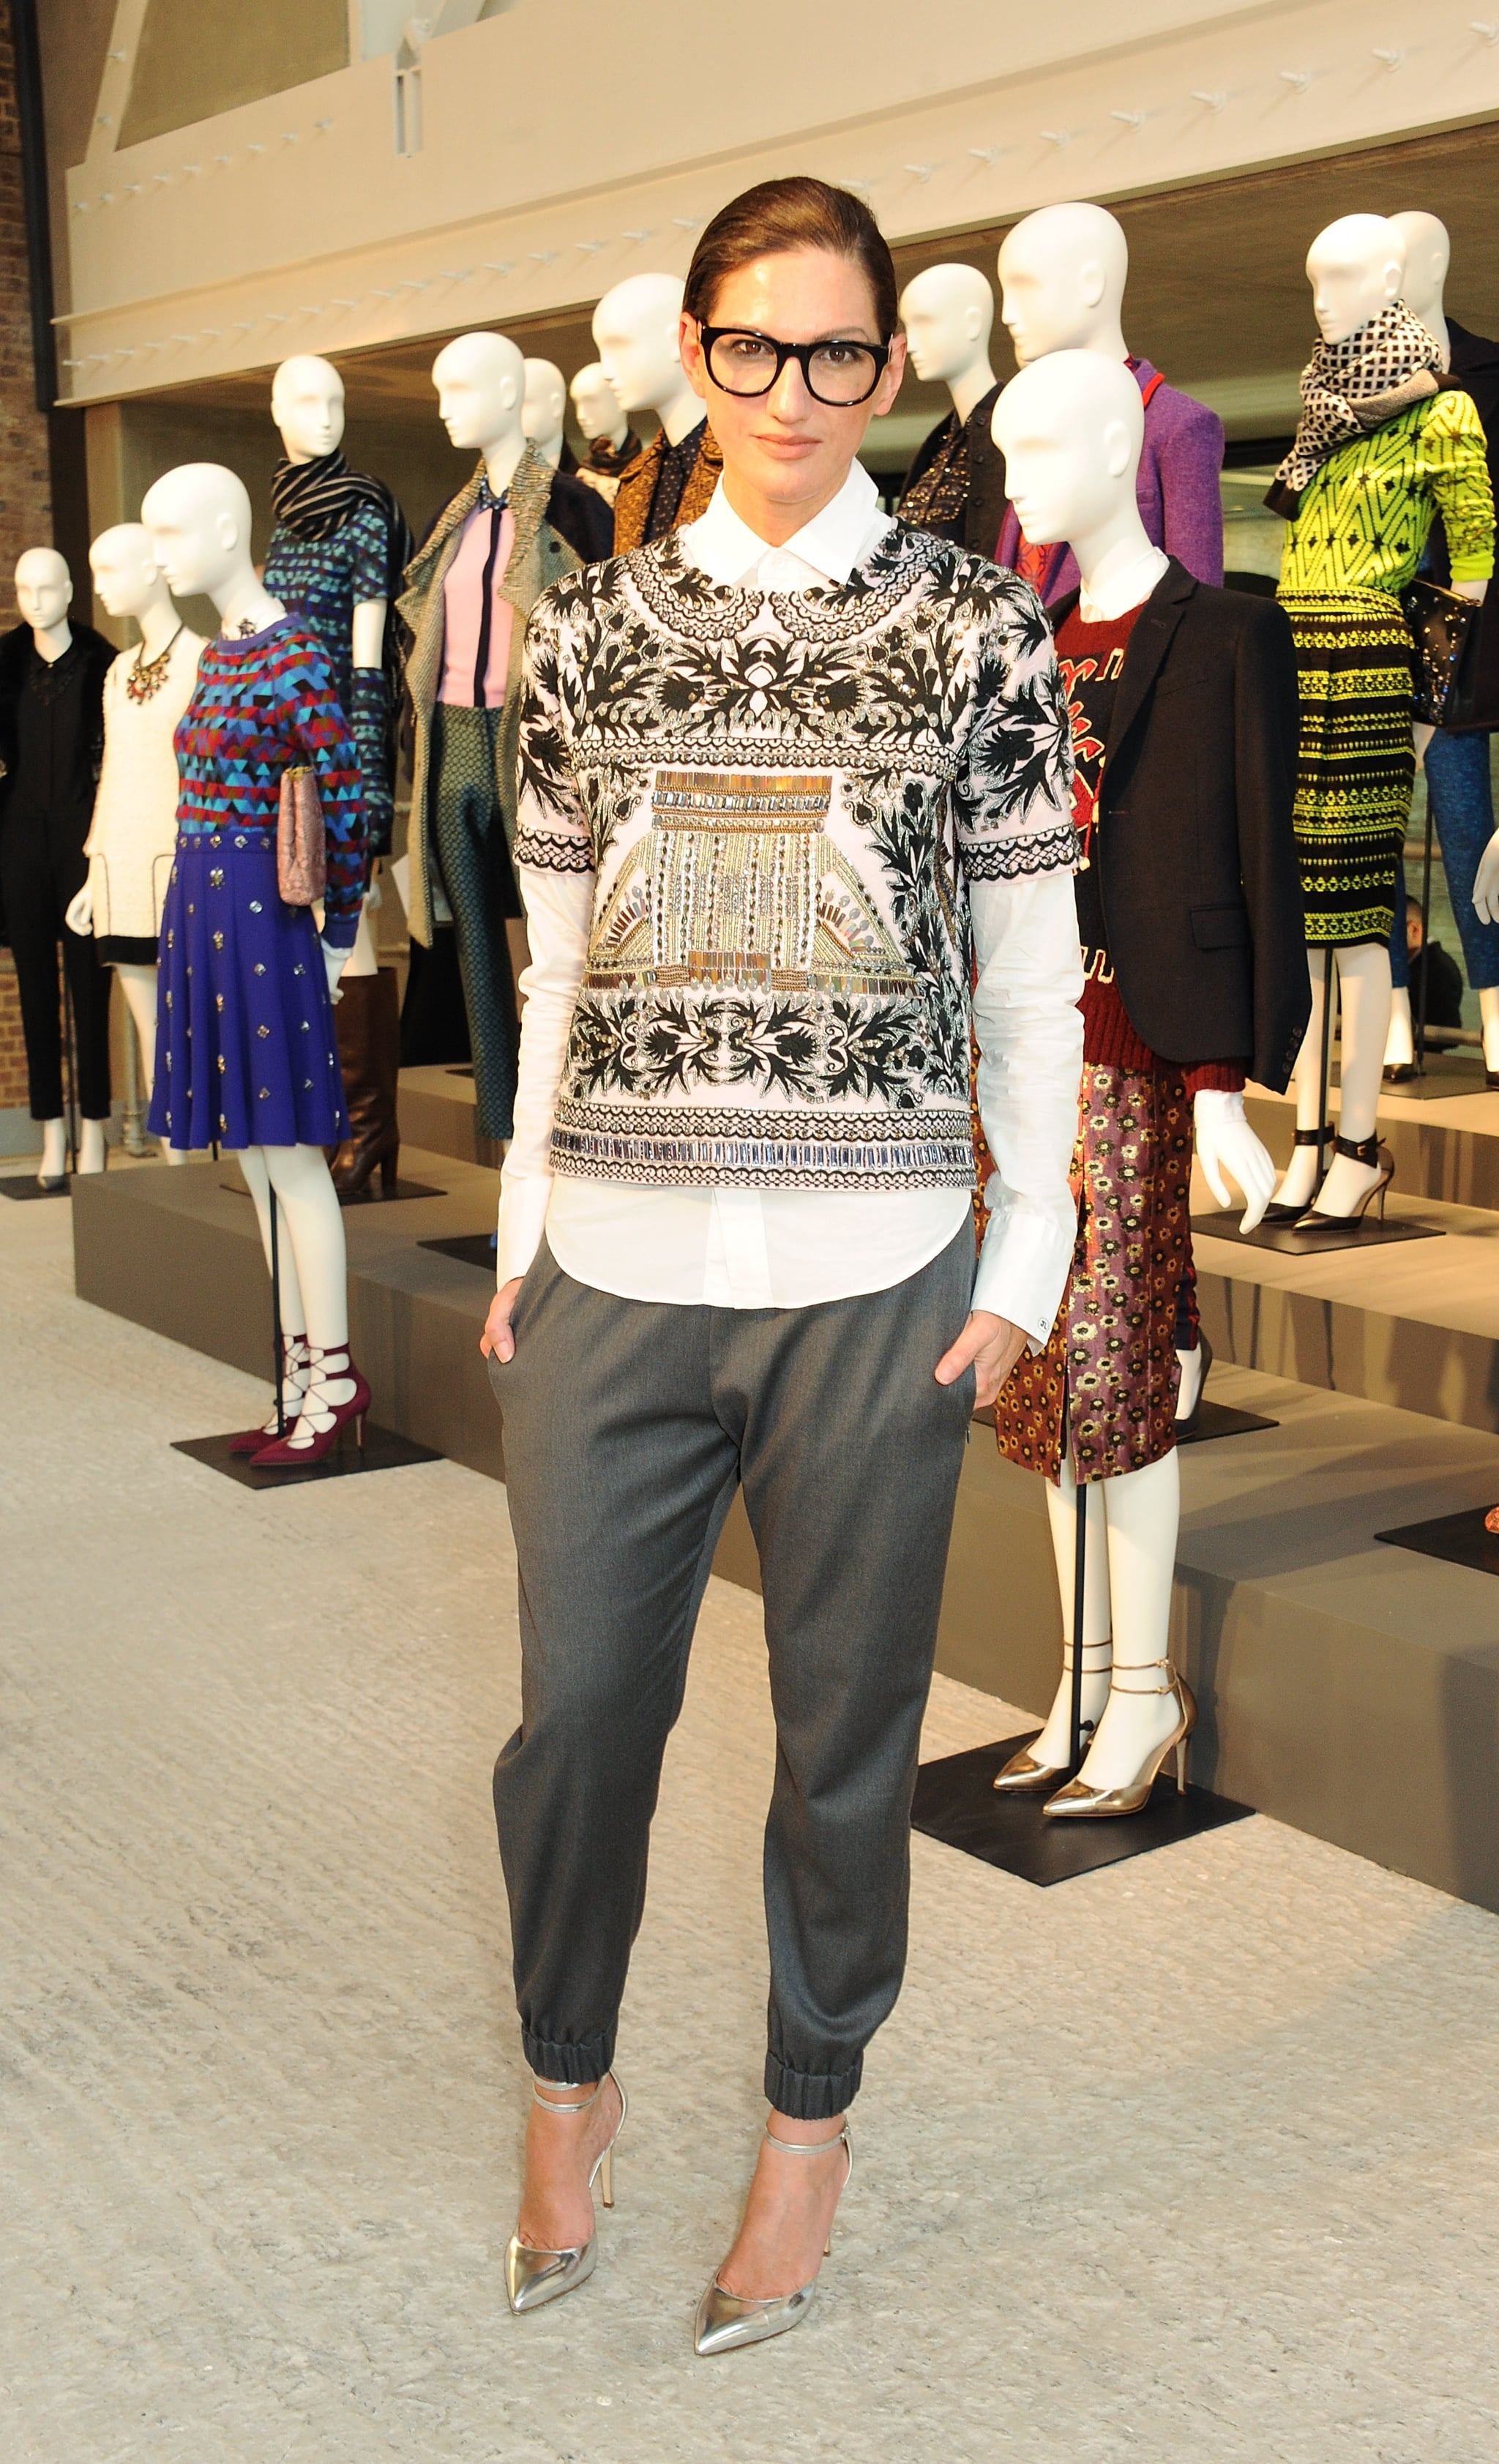 Proving her style translates worldwide, she picked a professional layered look for a London event.